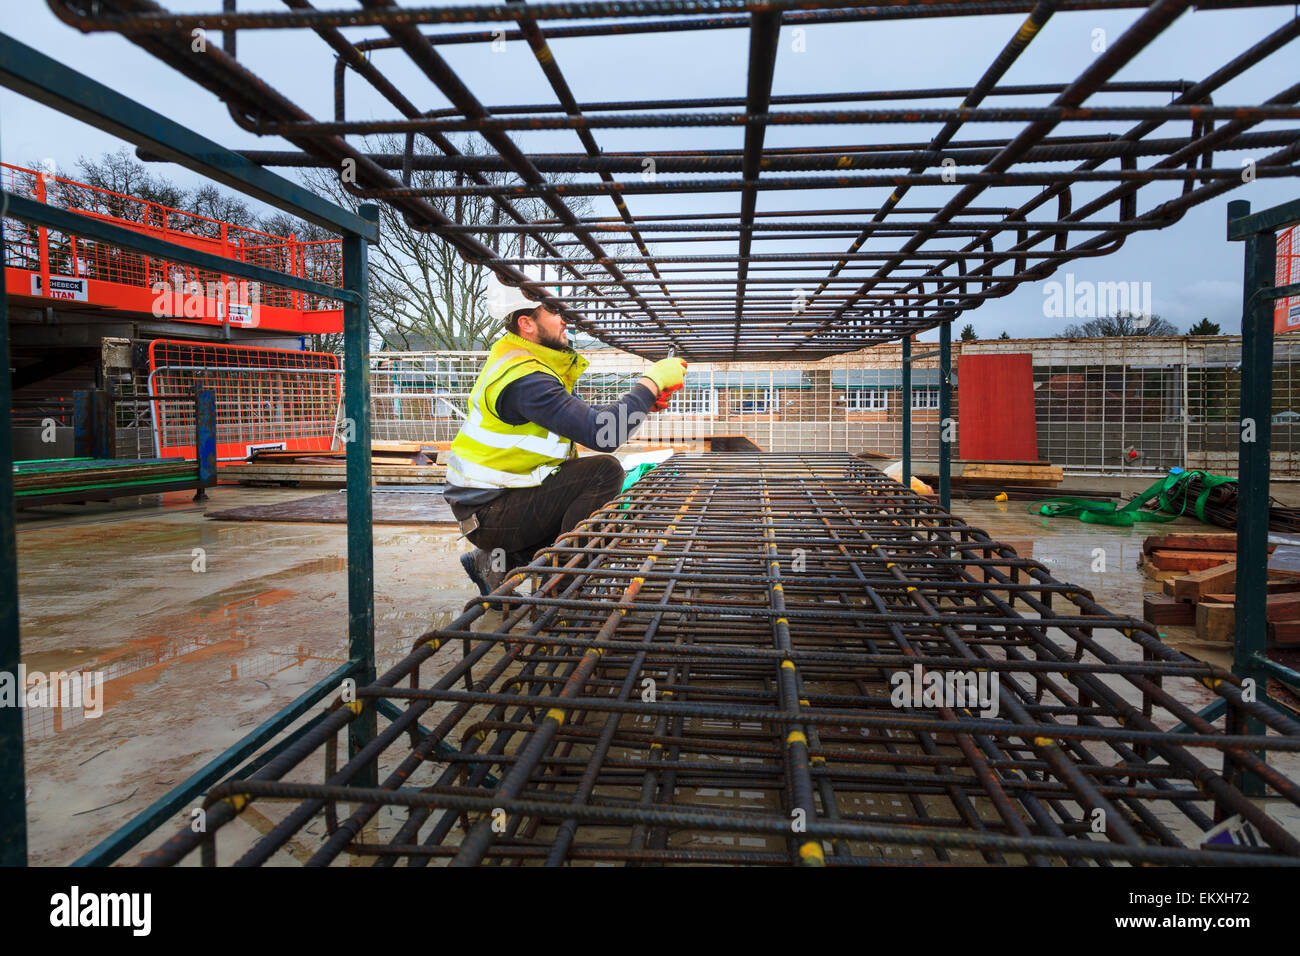 Construction worker forming concrete reinforcing bars - Stock Image